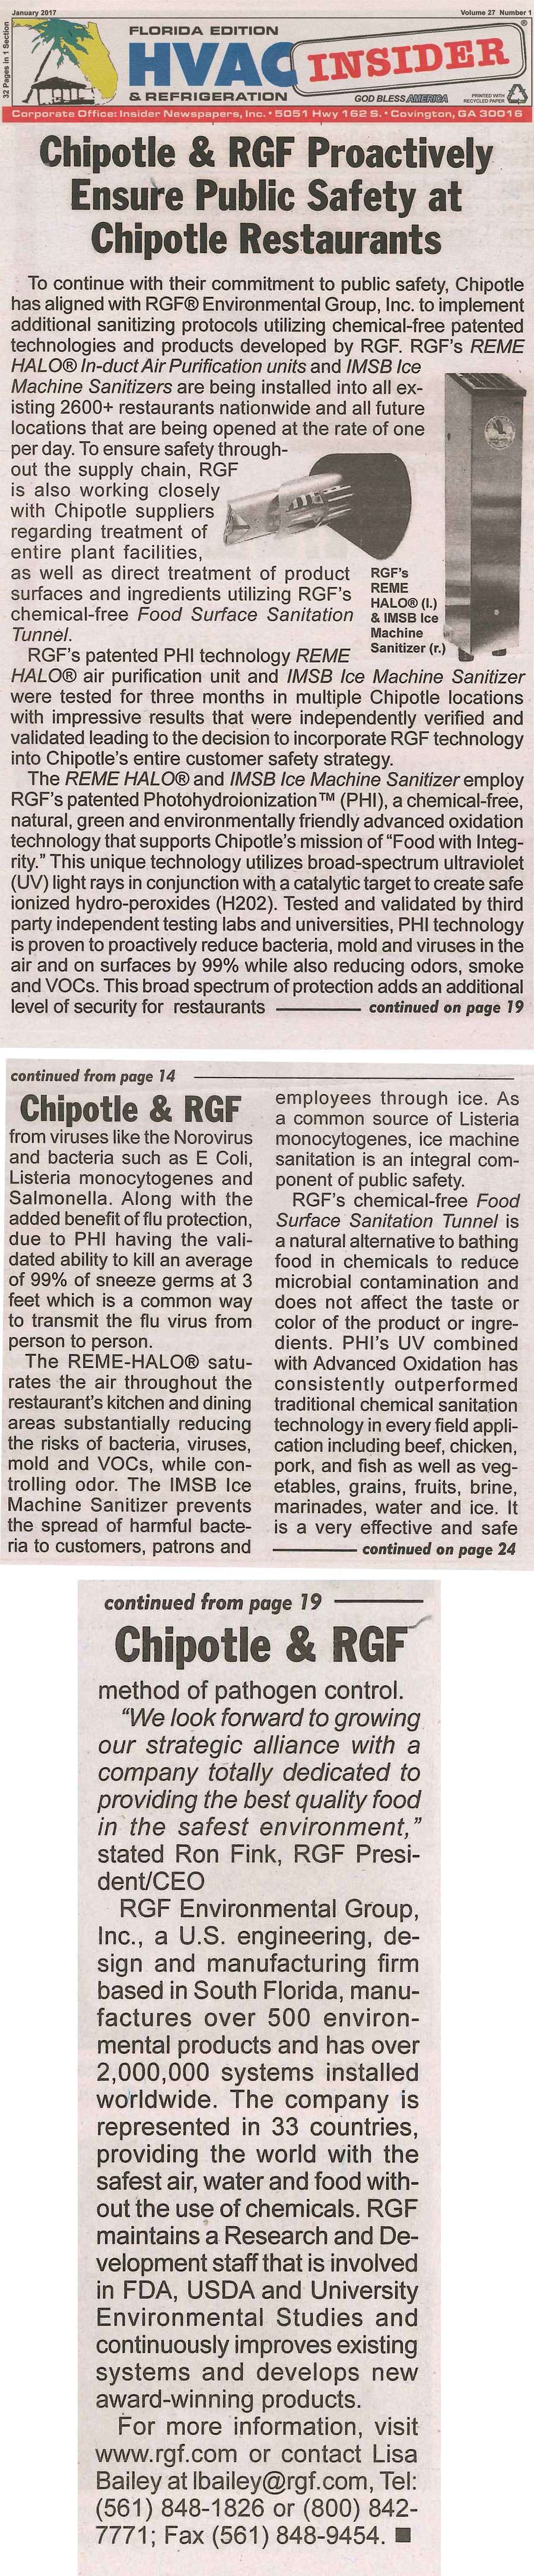 HVAC INSIDER, January 2017 - Chipotle